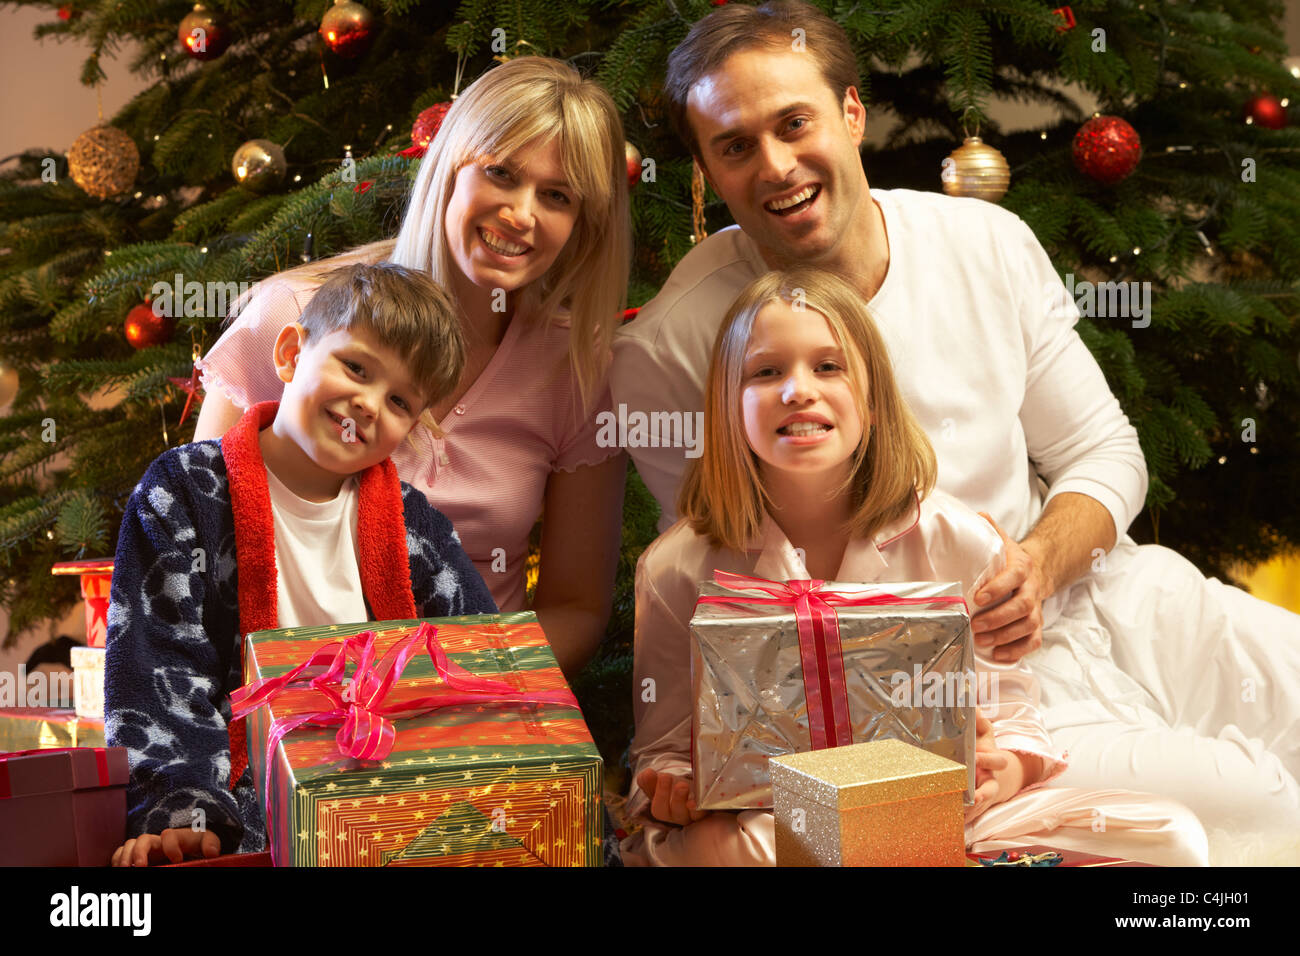 Family Opening Christmas Present In Front Of Tree Stock Photo